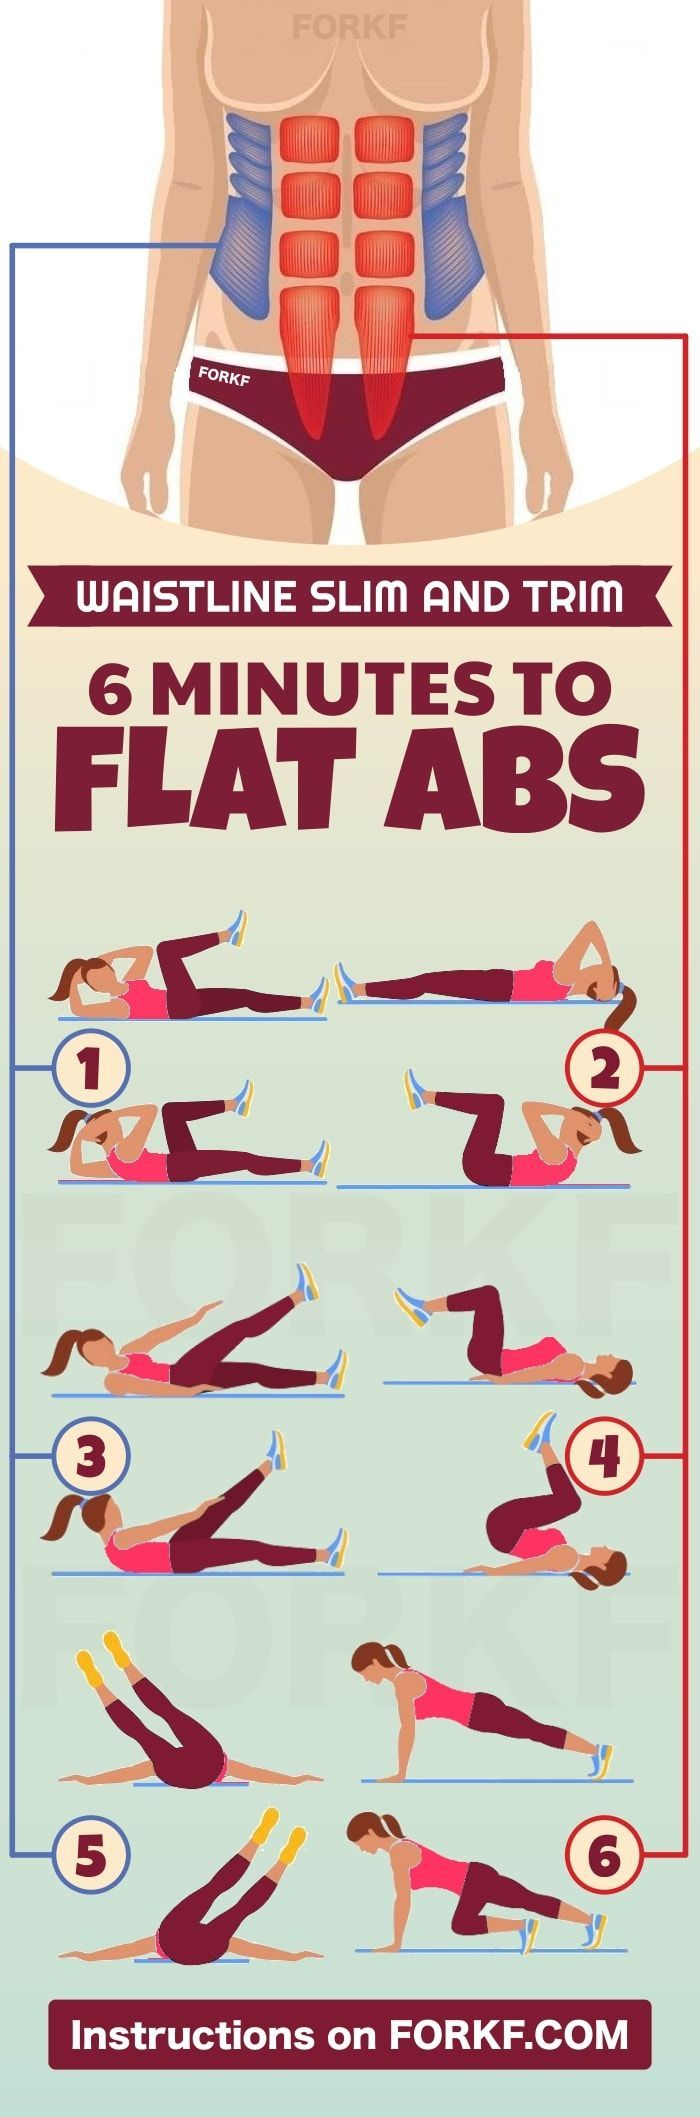 You don't need 40 minutes of exhausting exercises to get flat abs. Be smart about it! Diet plan for weight loss in two weeks! Do yourself a flat belly!